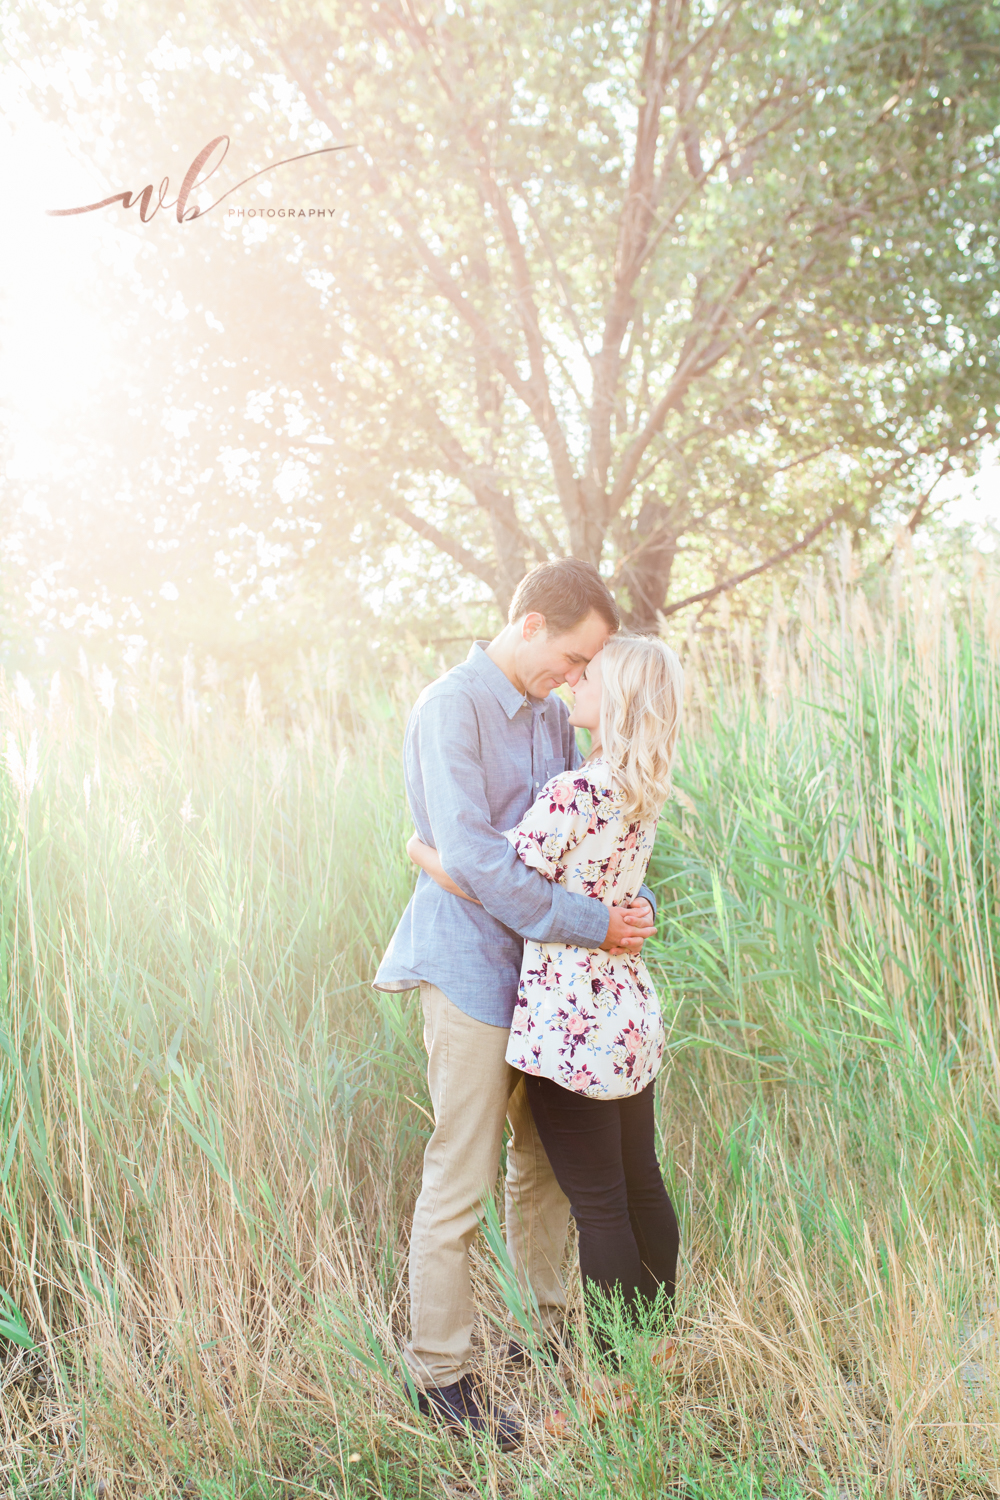 couples-photographer-whitney-bufton-photography-33.jpg